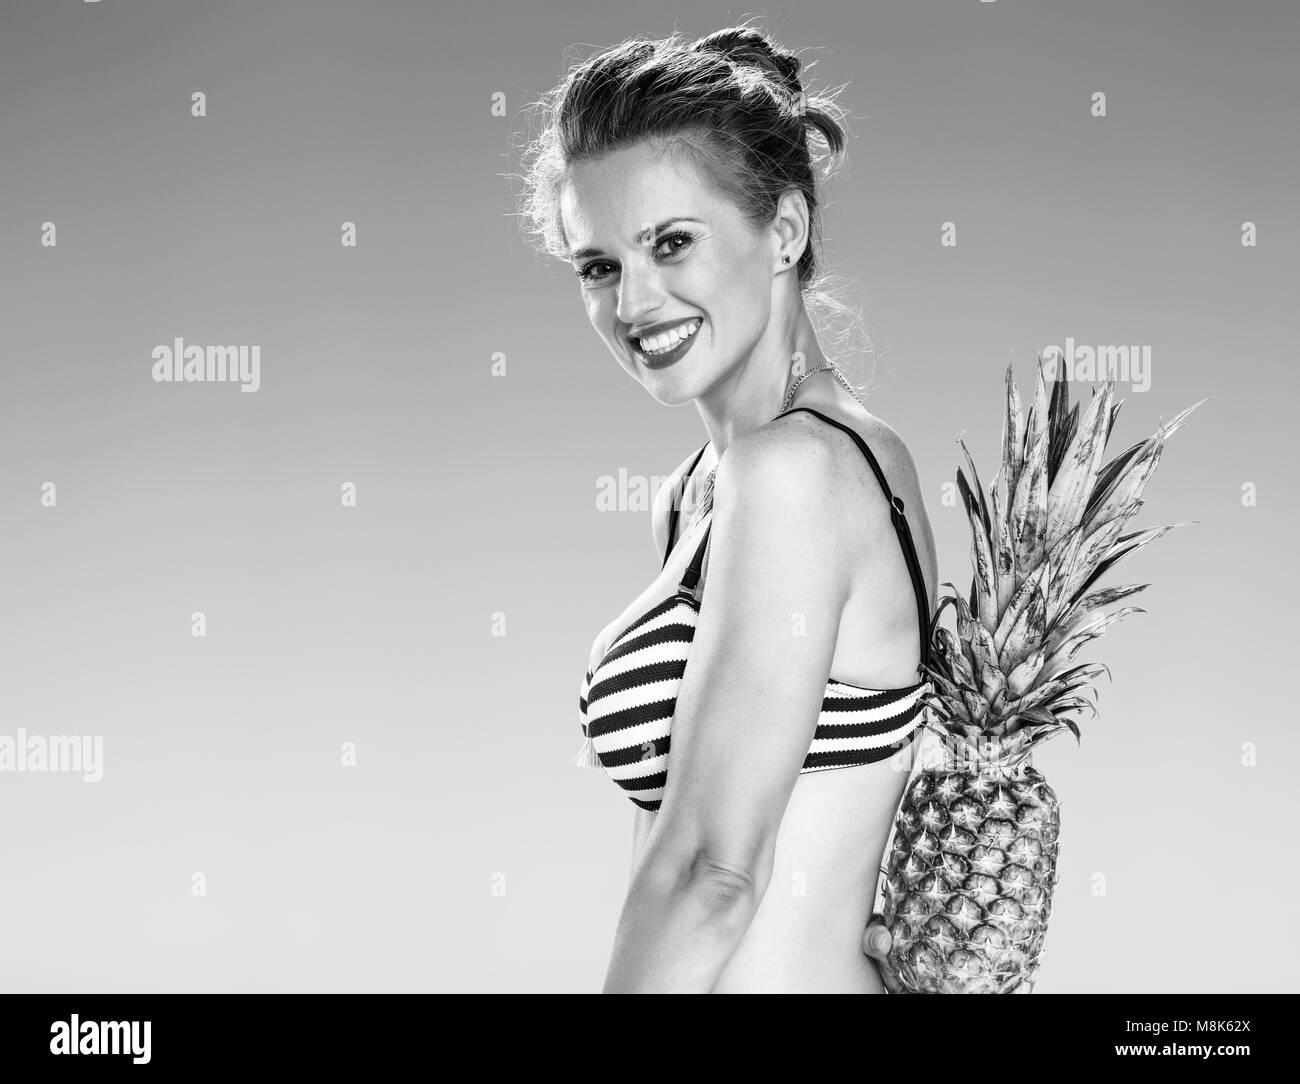 Perfect summer. smiling young woman in bikini on the seacoast hiding pineapple behind back - Stock Image